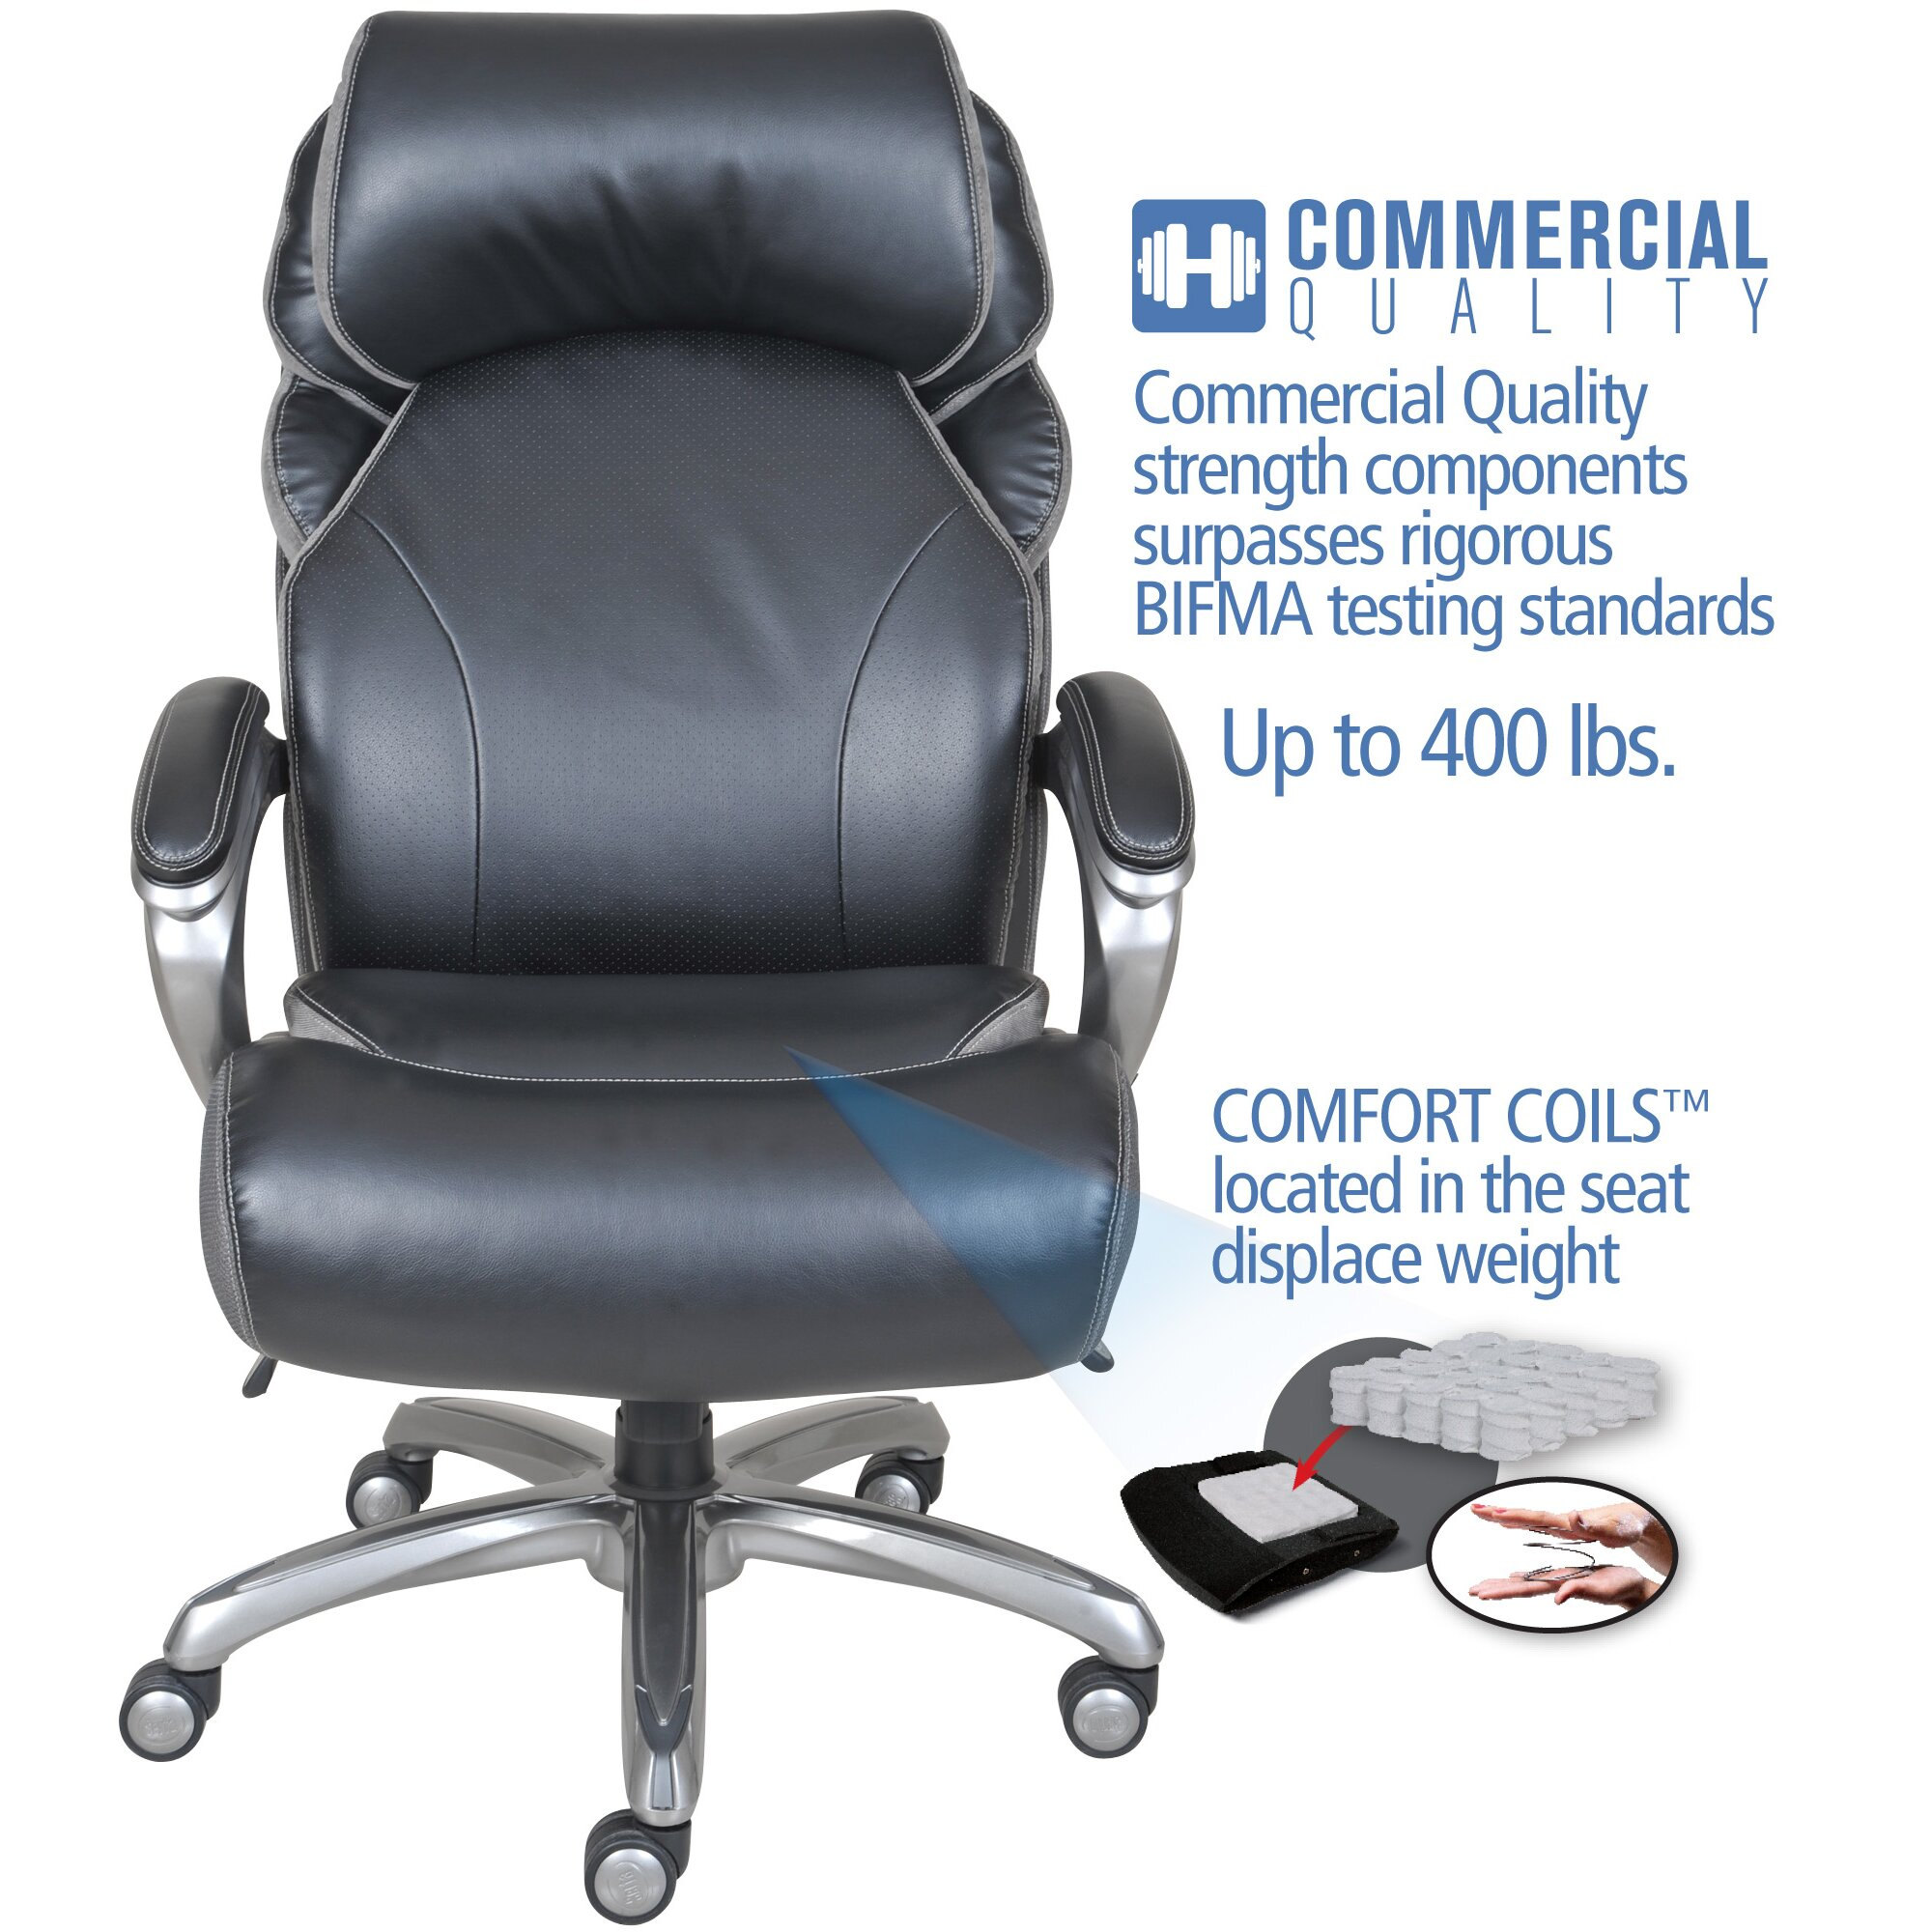 Serta Tranquility Mattress ... Office Furniture ... All Office Chairs Serta at Home SKU: SERT1039